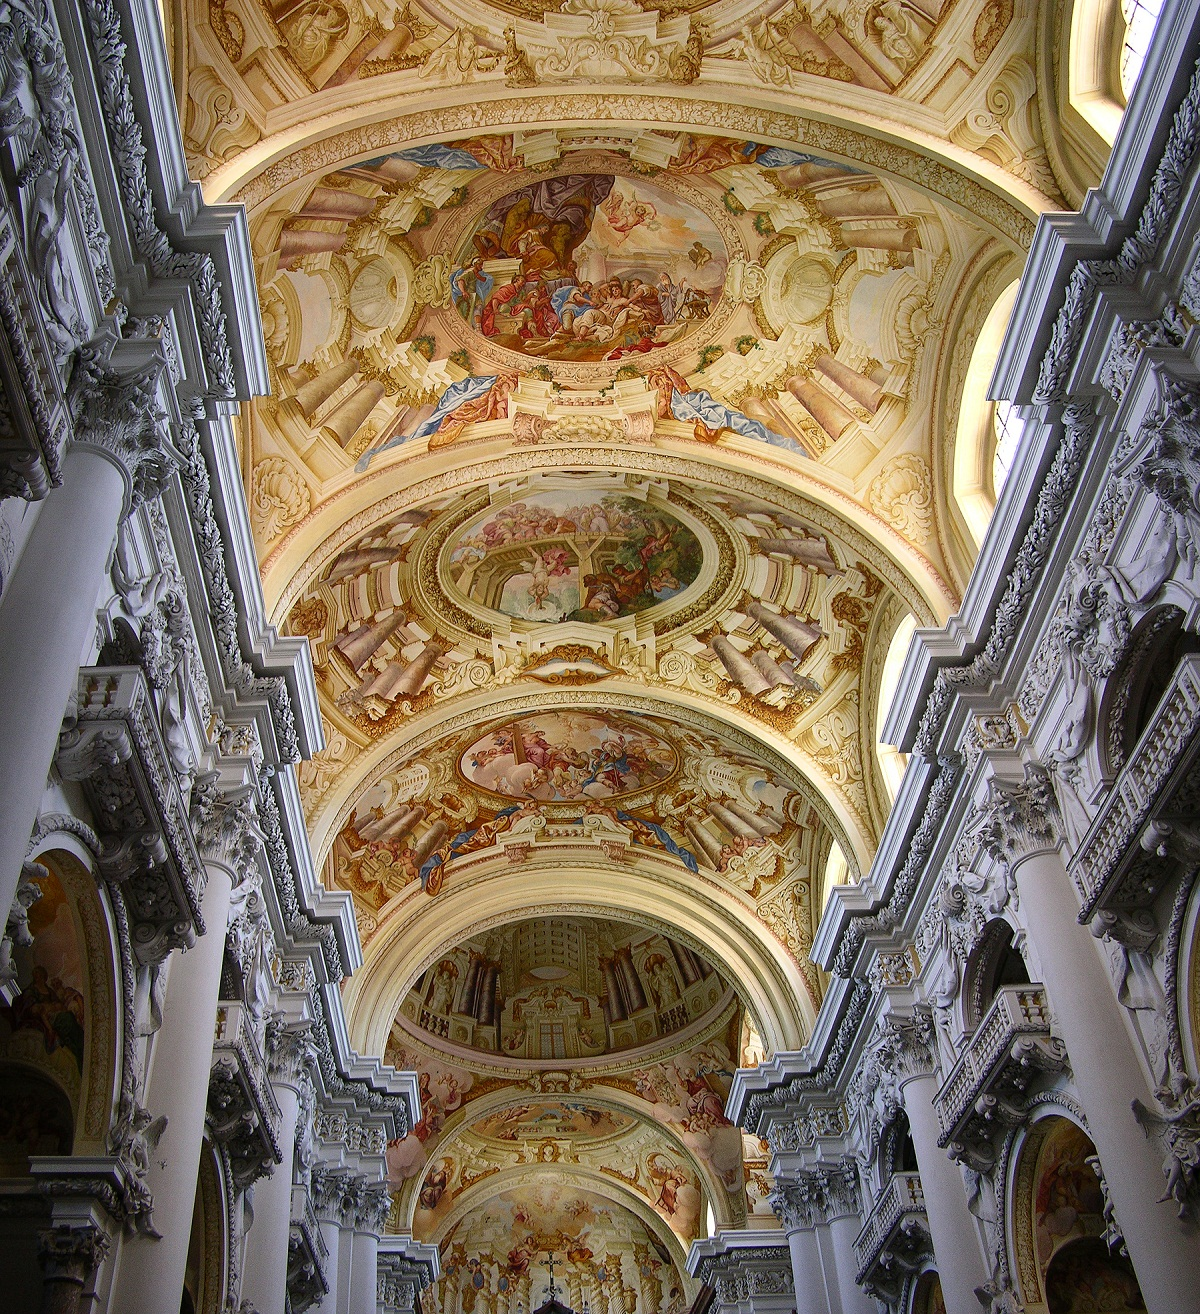 Saint Florian Abbey, Austria, Ceiling architecture and paintings